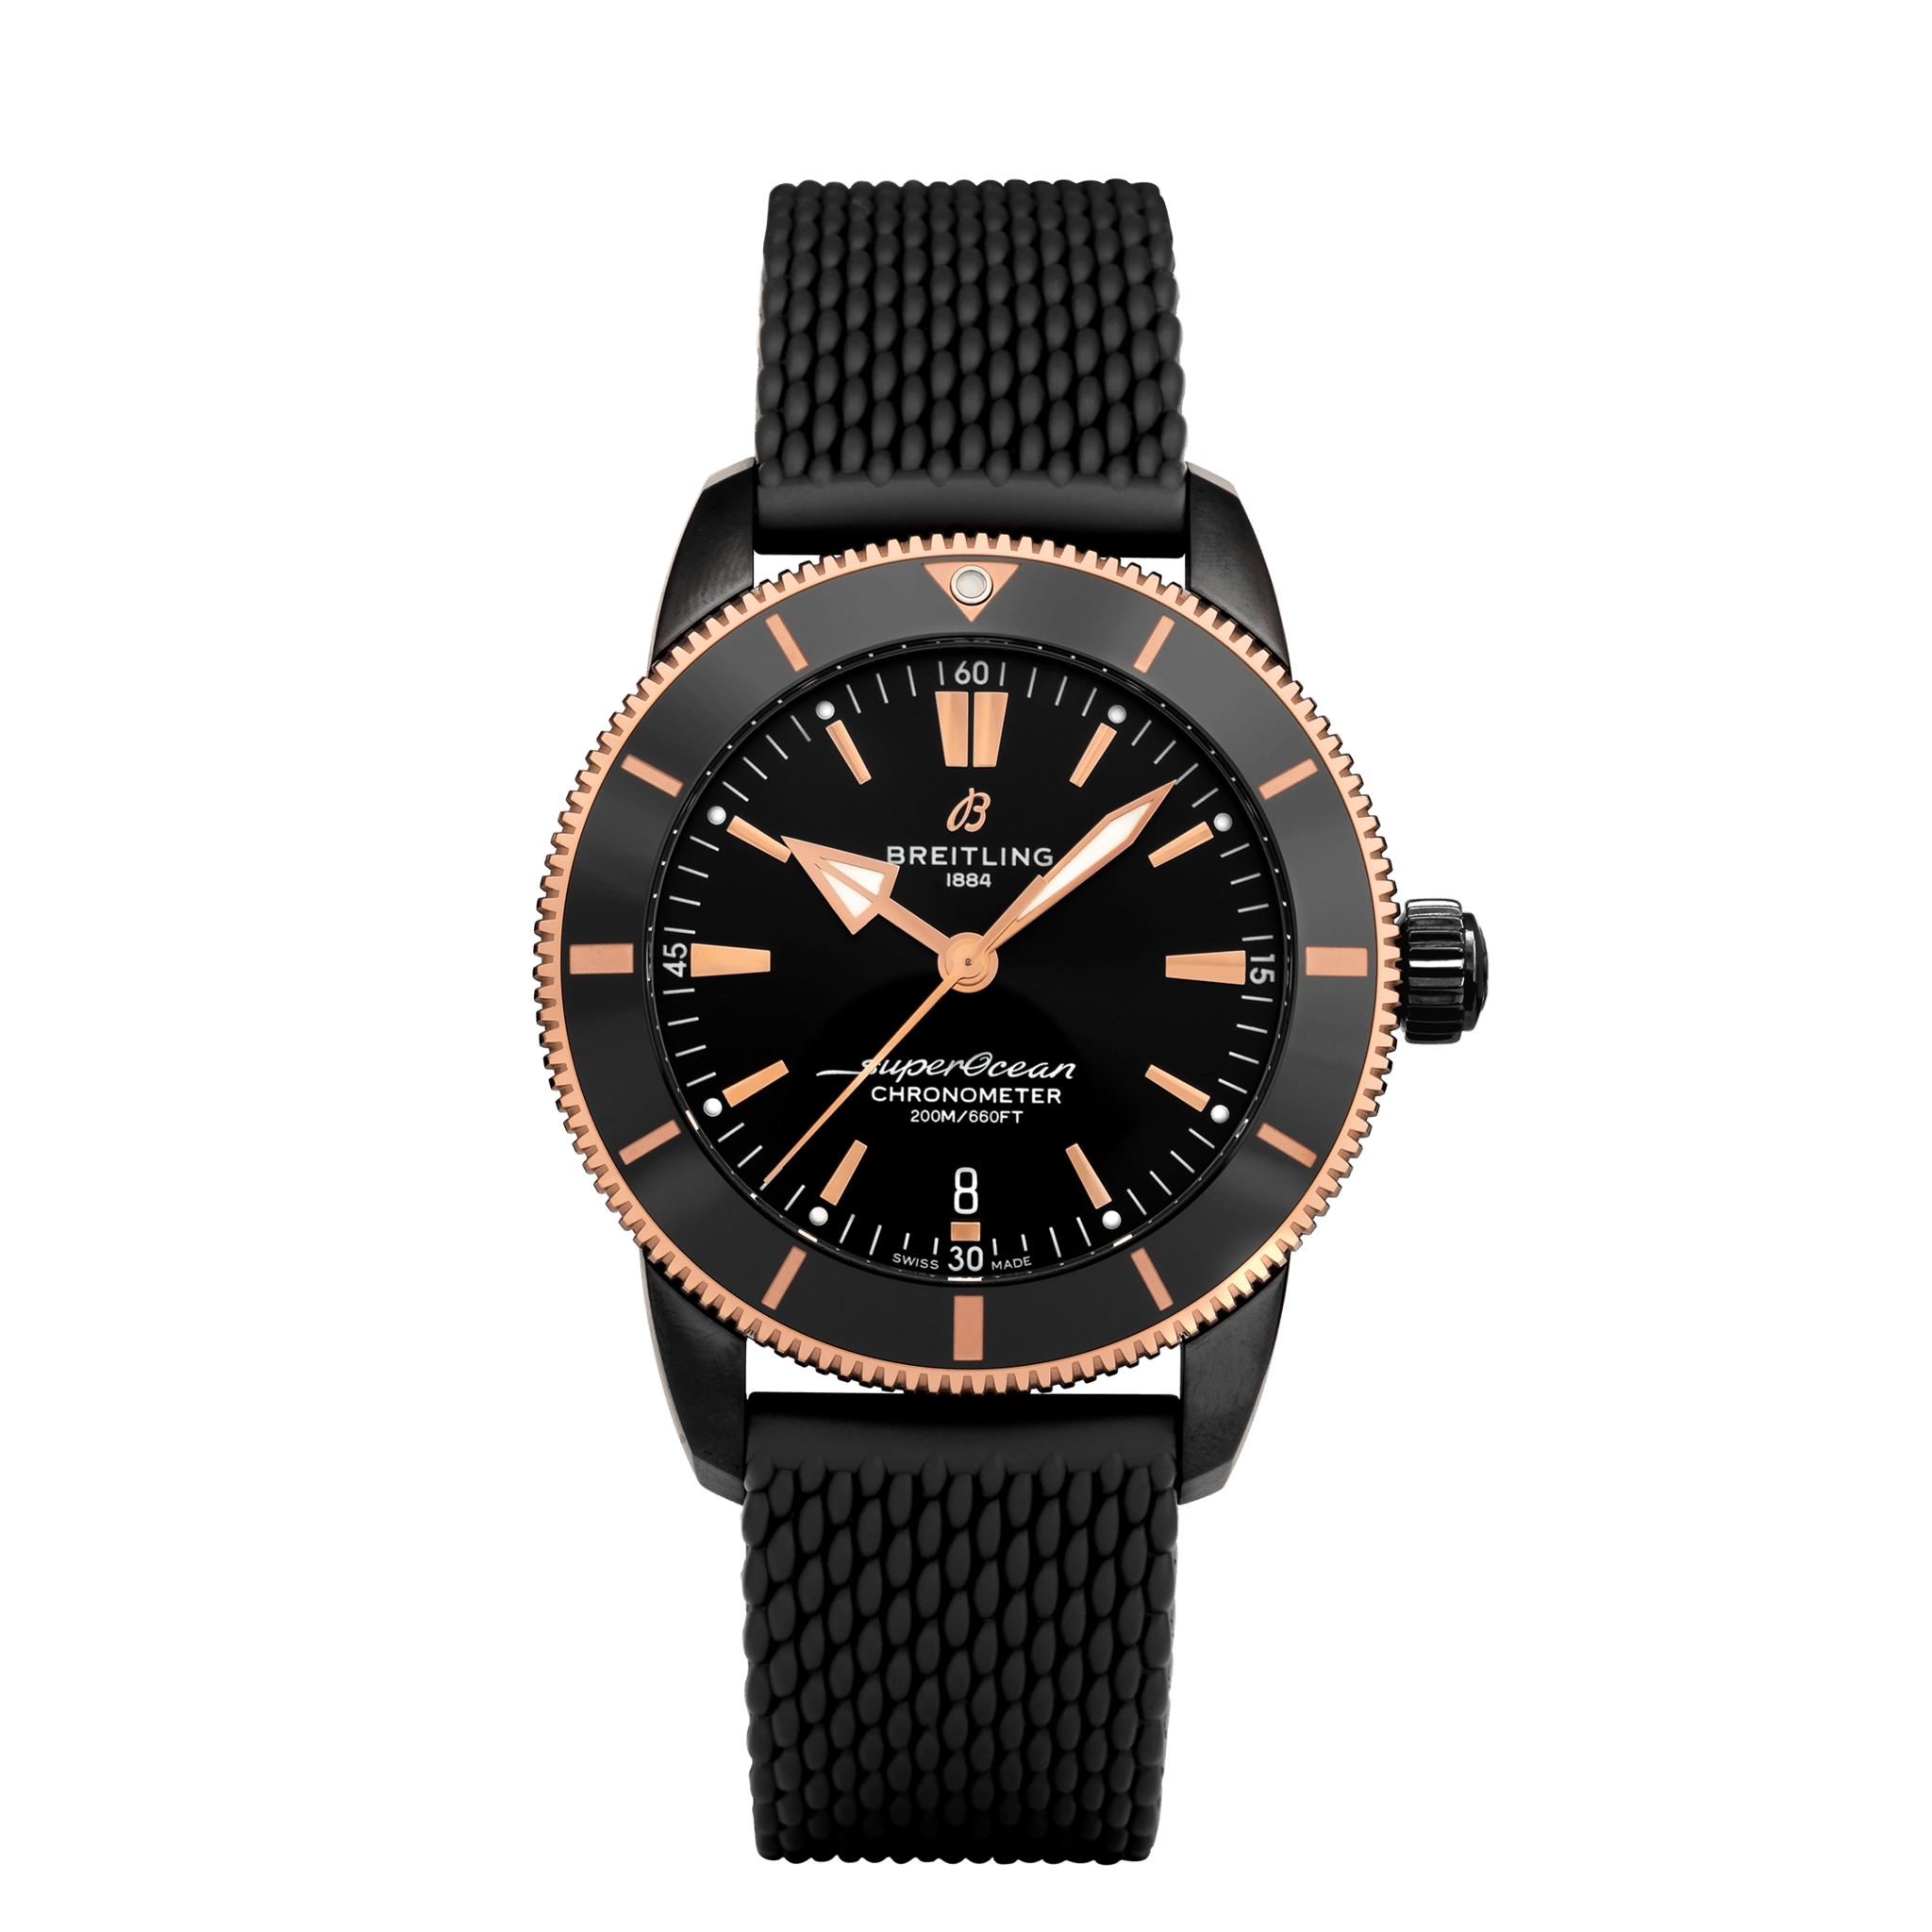 https://www.breitling.com/media/image/1/gallery_square/asset-version-e0ca098a1c/ub20303a1b1s1-superocean-heritage-b20-automatic-44-berverly-hills-limited-edition-soldier.png